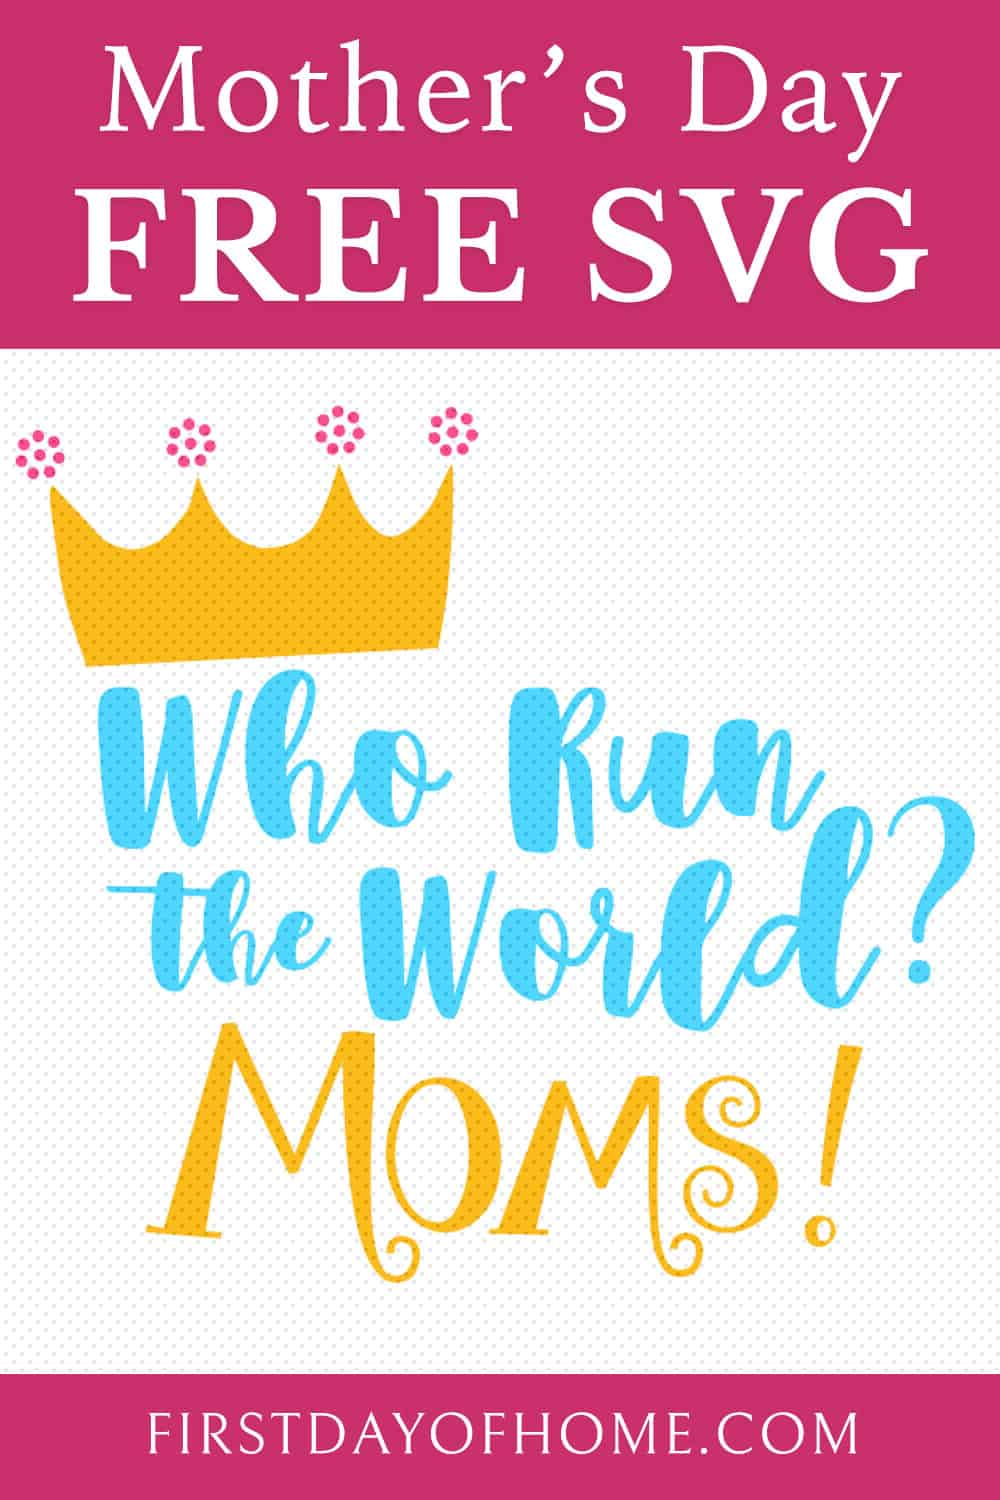 Free SVG file to make a T-shirt for Mother's Day